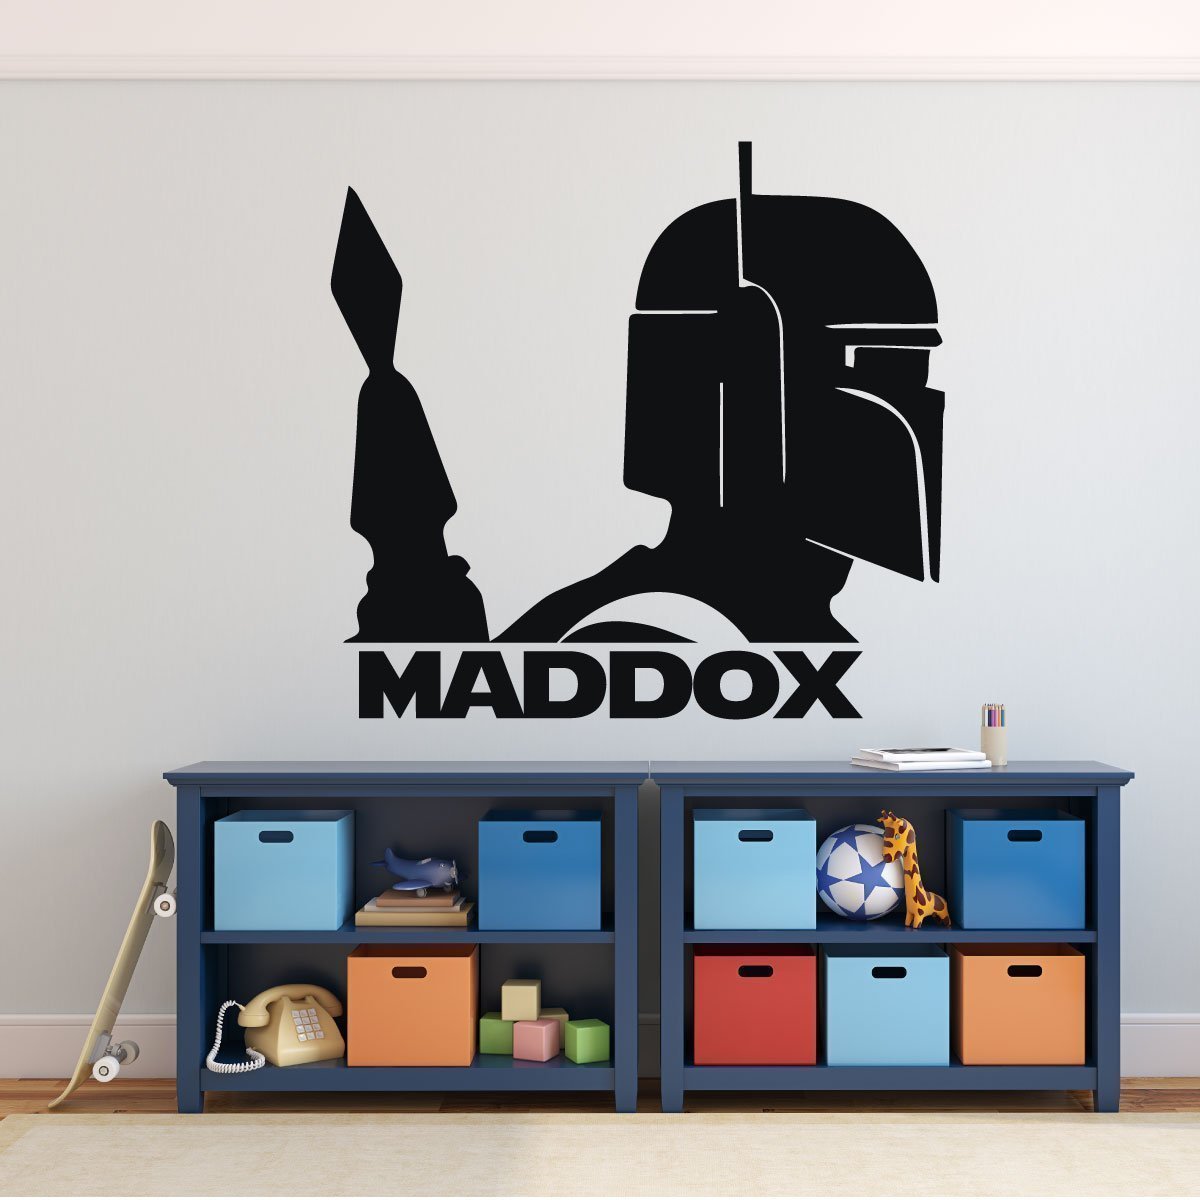 Boba Fett Wall Decor - Star Wars Personalized Vinyl Decal For Boy's Bedroom, Gameroom, or Playroom Decor